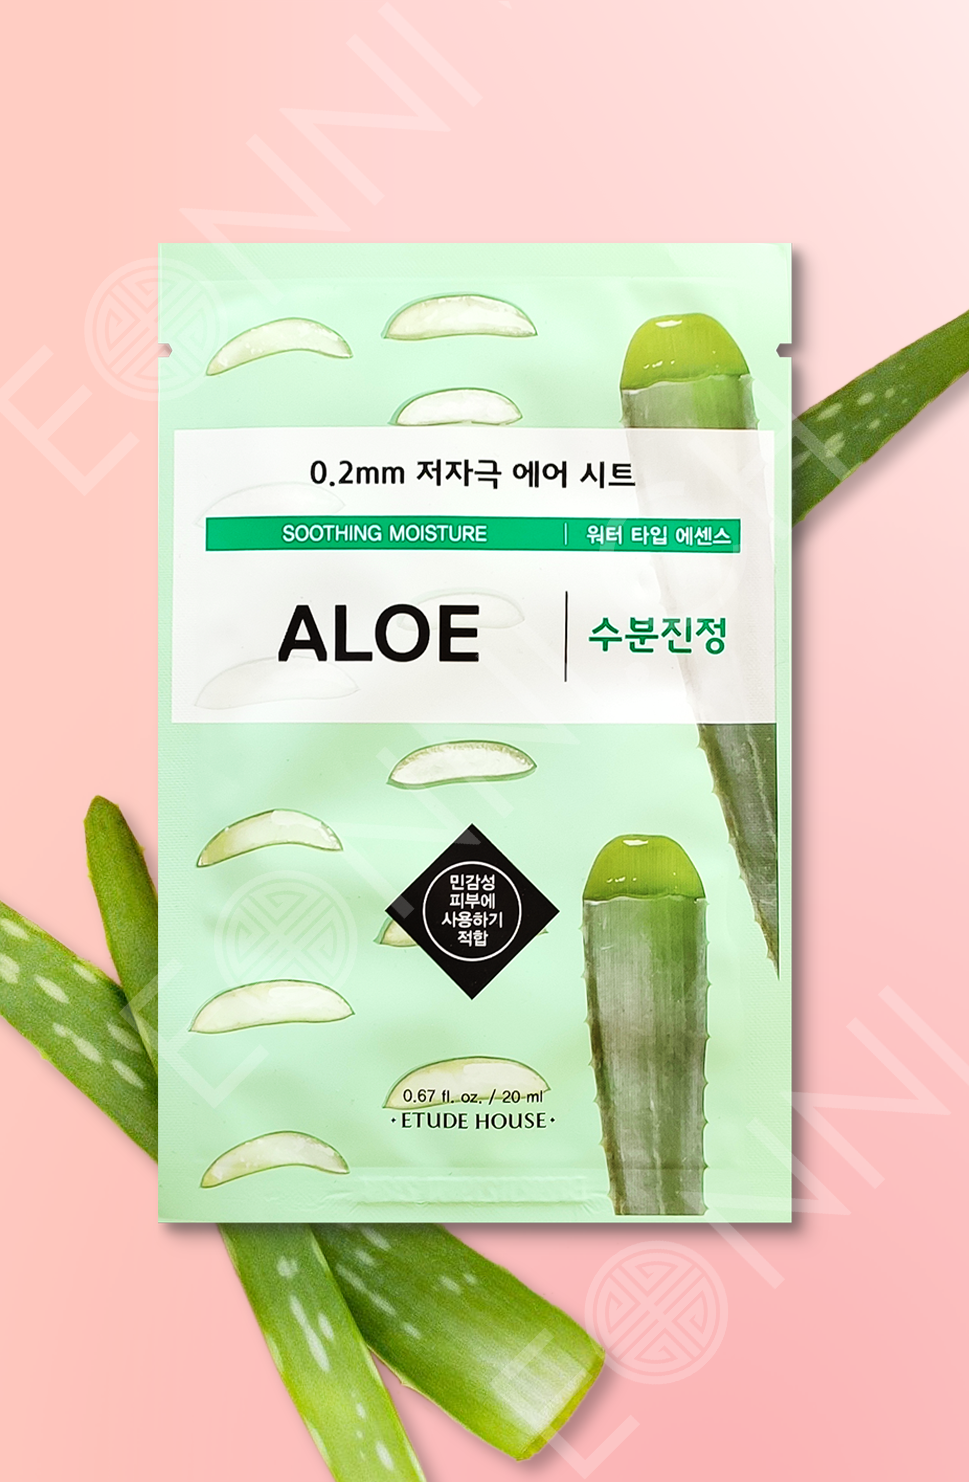 Etude House 0.2mm Therapy Air Mask Aloe Tuchmaske